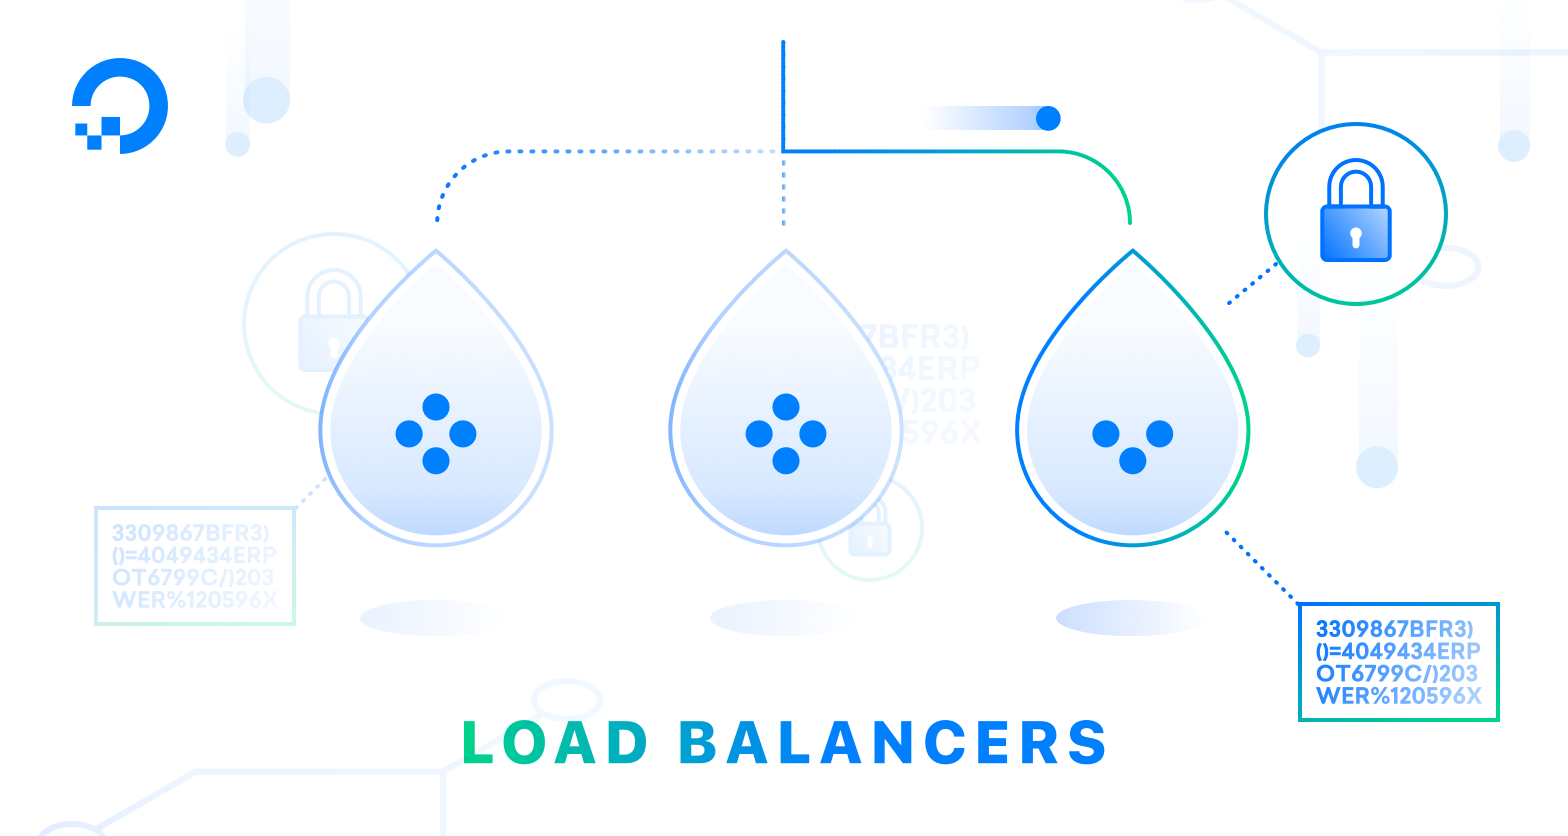 Introducing Updates for Load Balancers